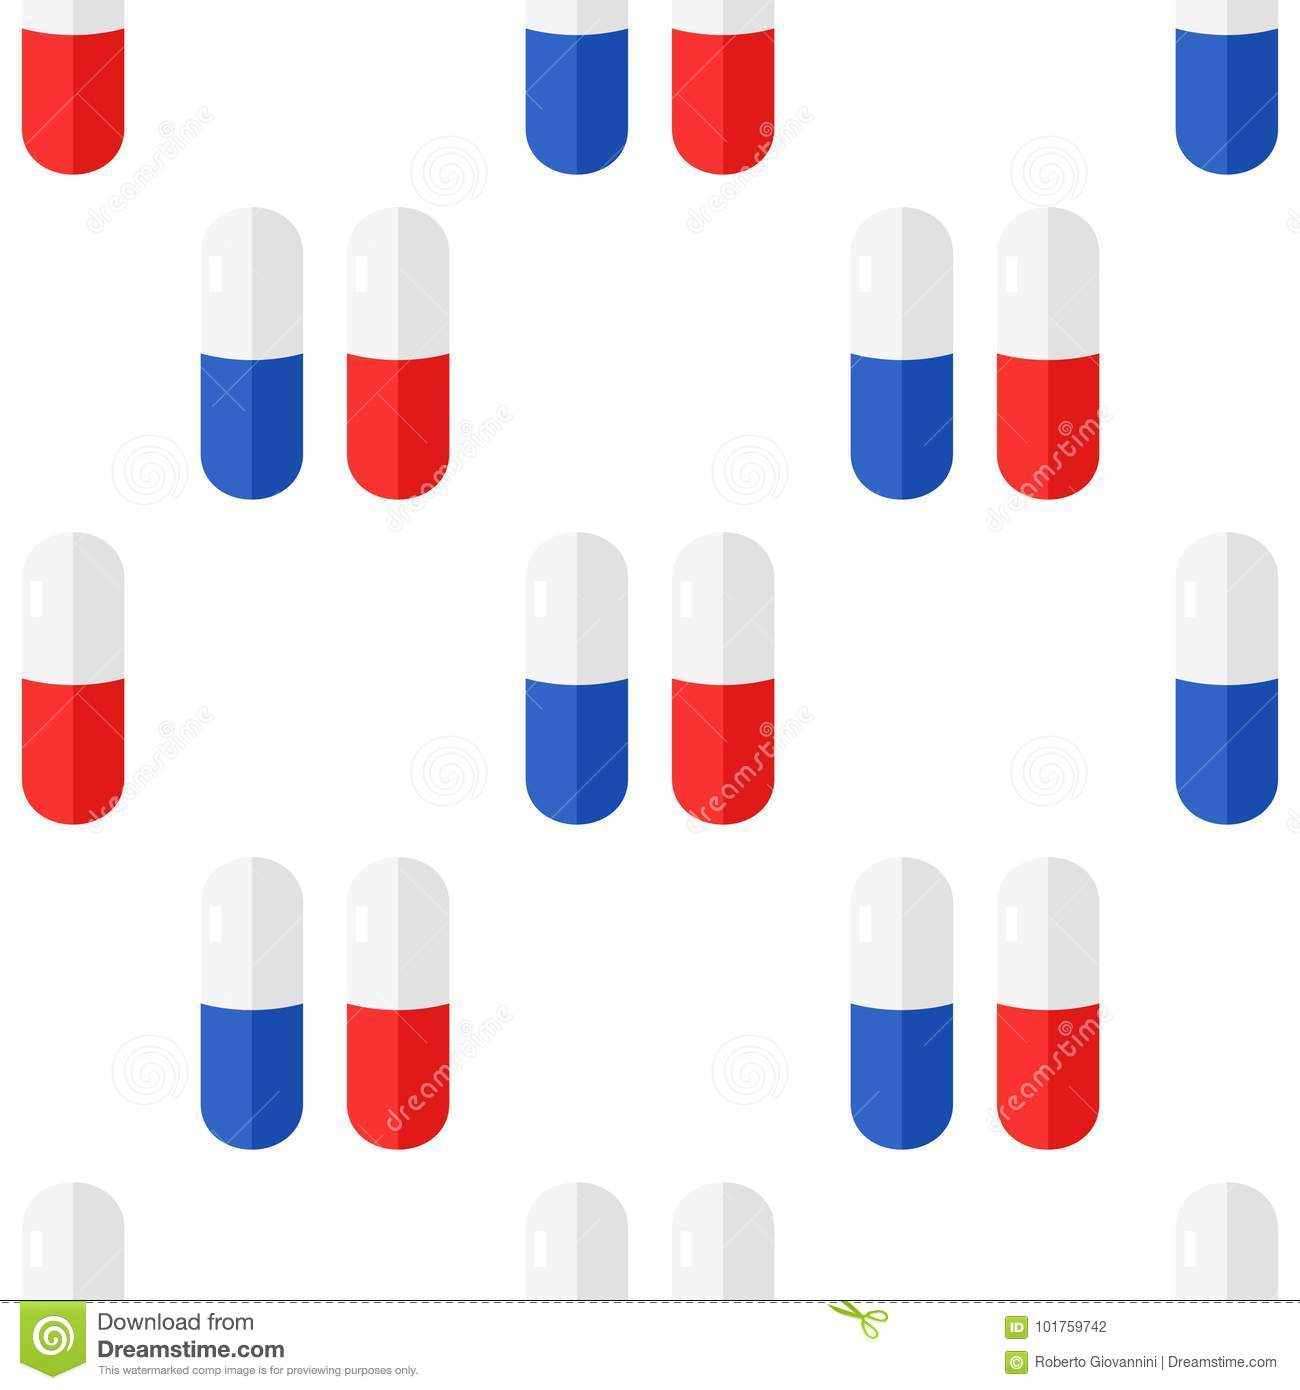 Tablet or Pill Flat Icon Seamless Pattern